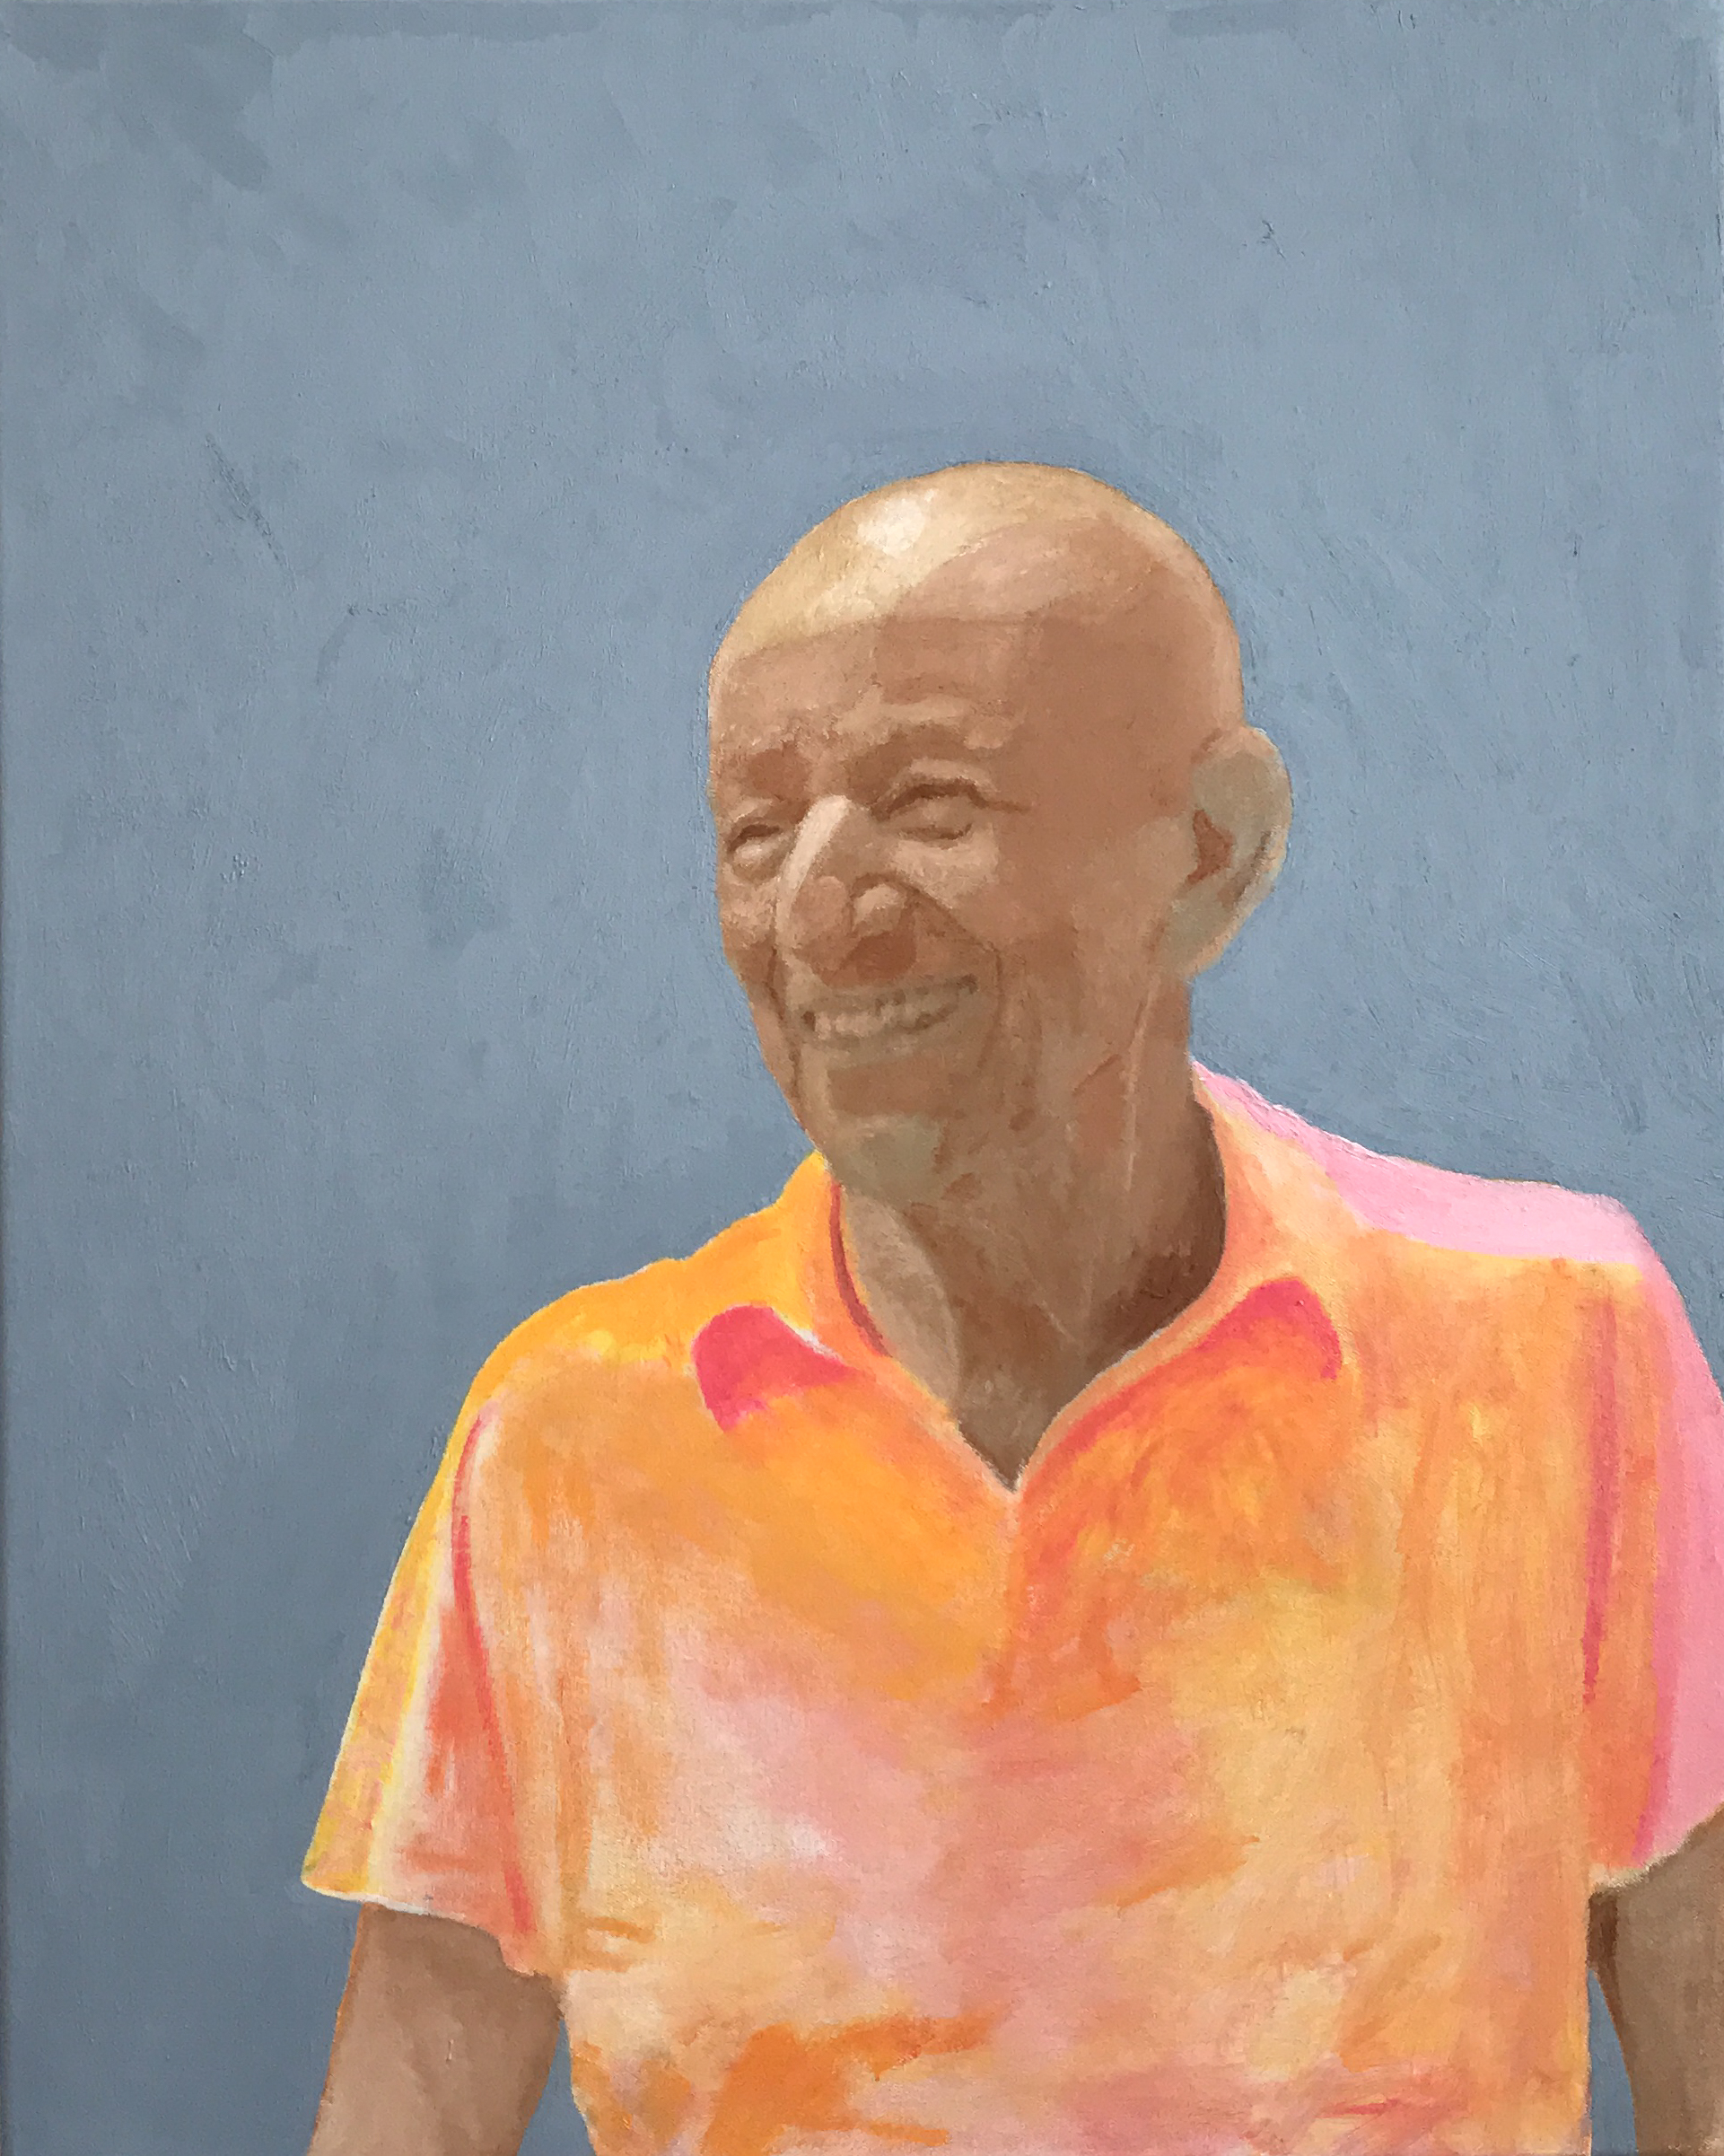 Tyler Loftis Portrait of Alex Katz VIE magazine